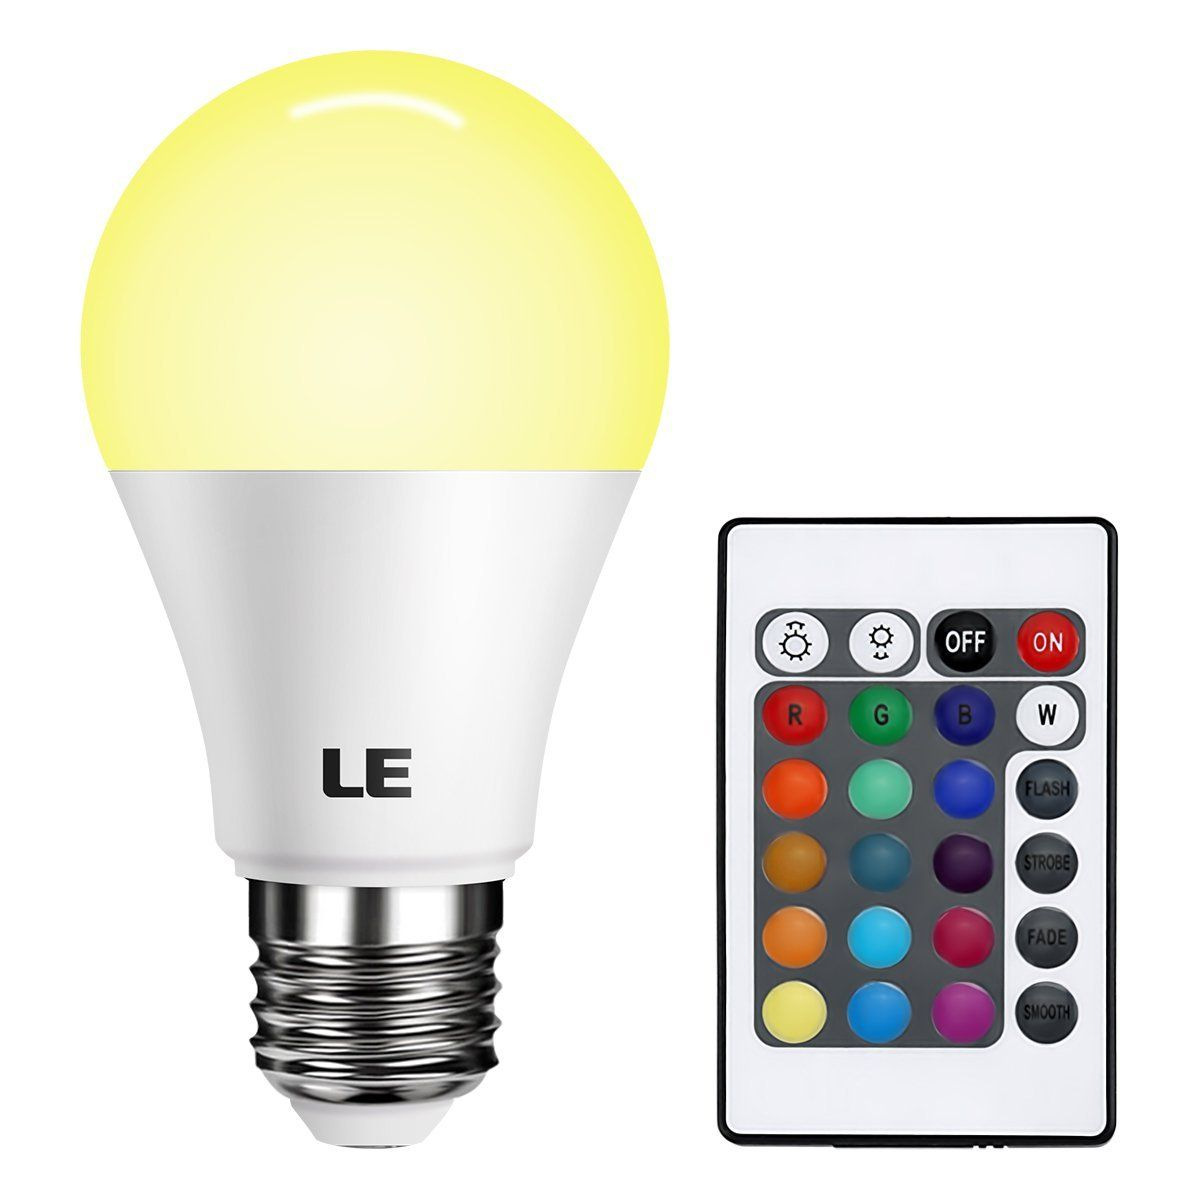 Top 10 Best Led Light Bulbs In Reviews